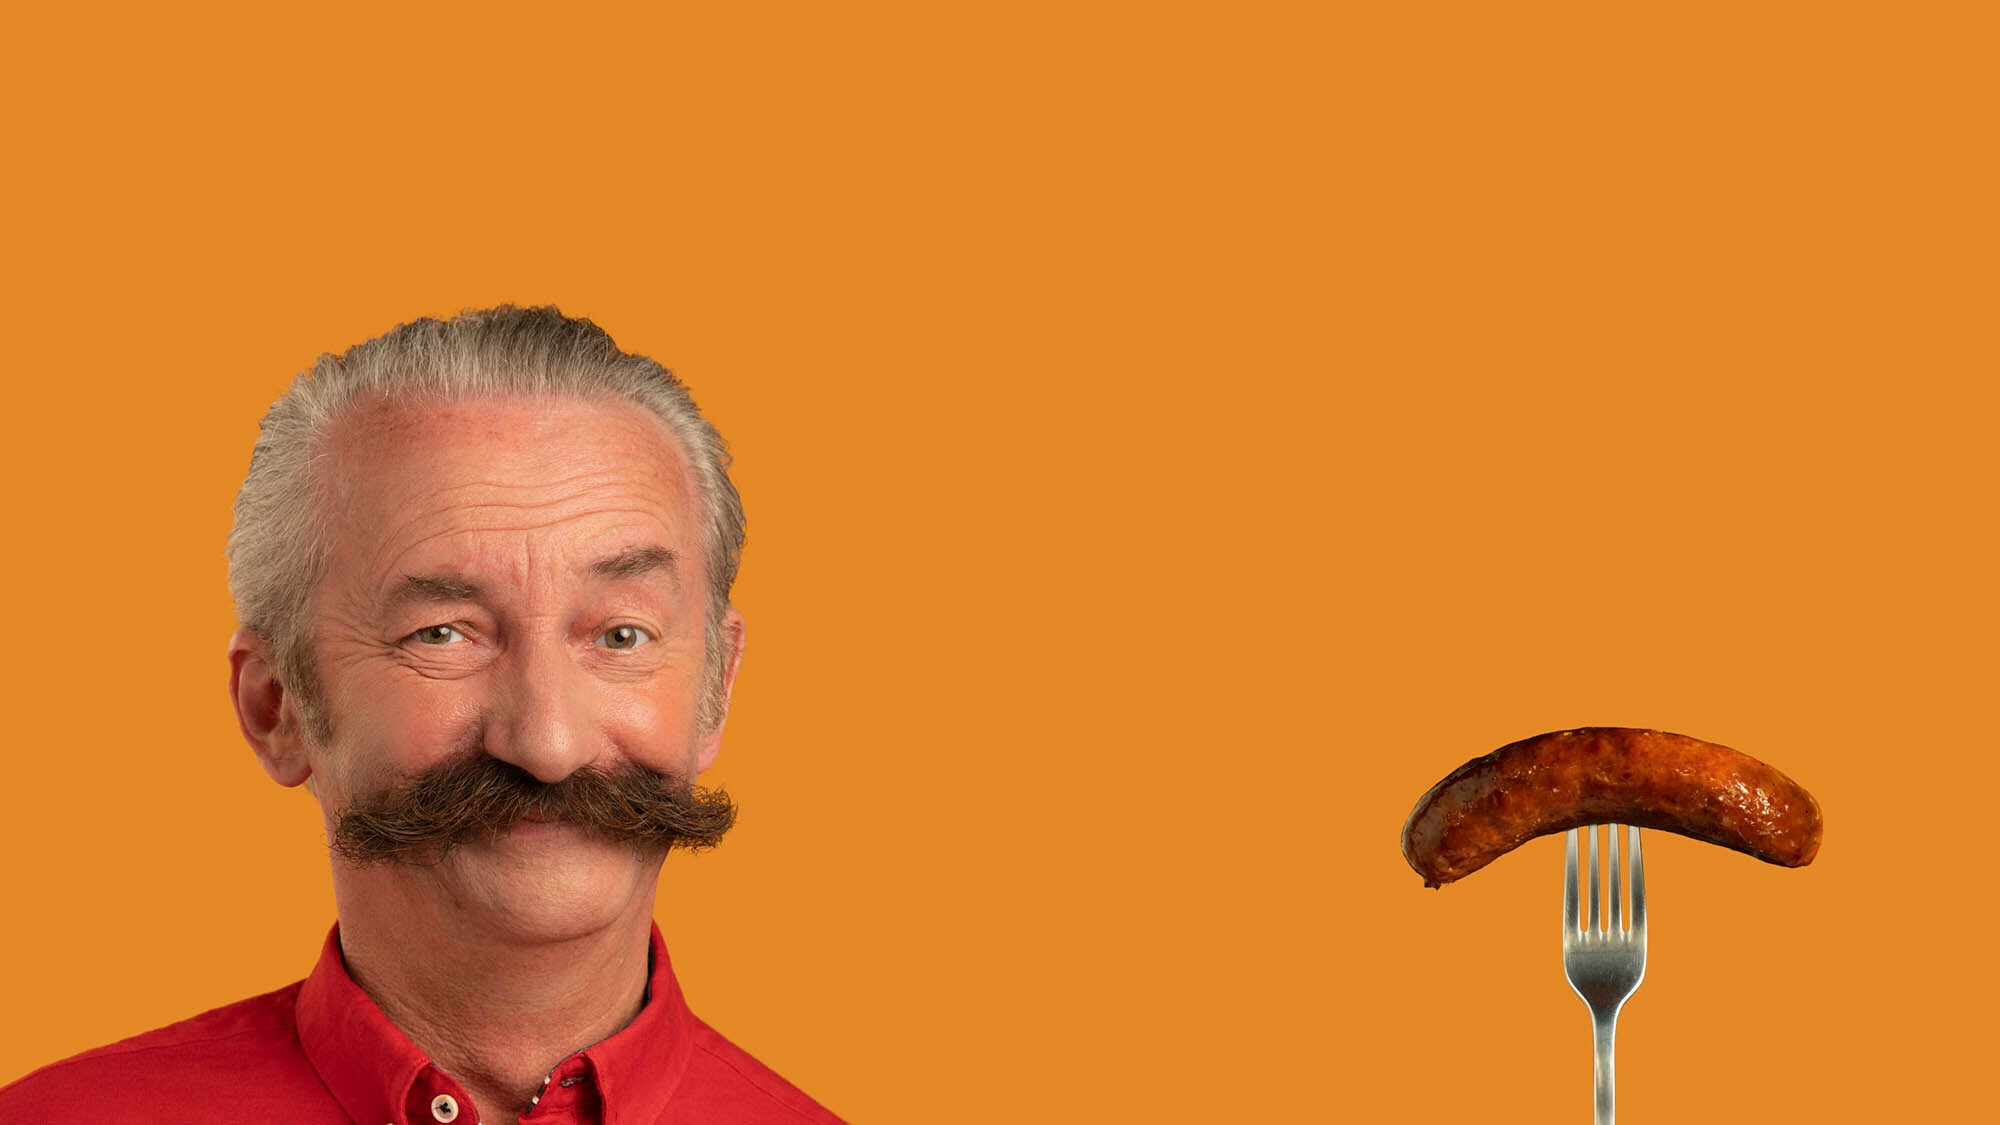 Man with a moustache twinning with a sausage on an orange background as part of FareShare's food campaign